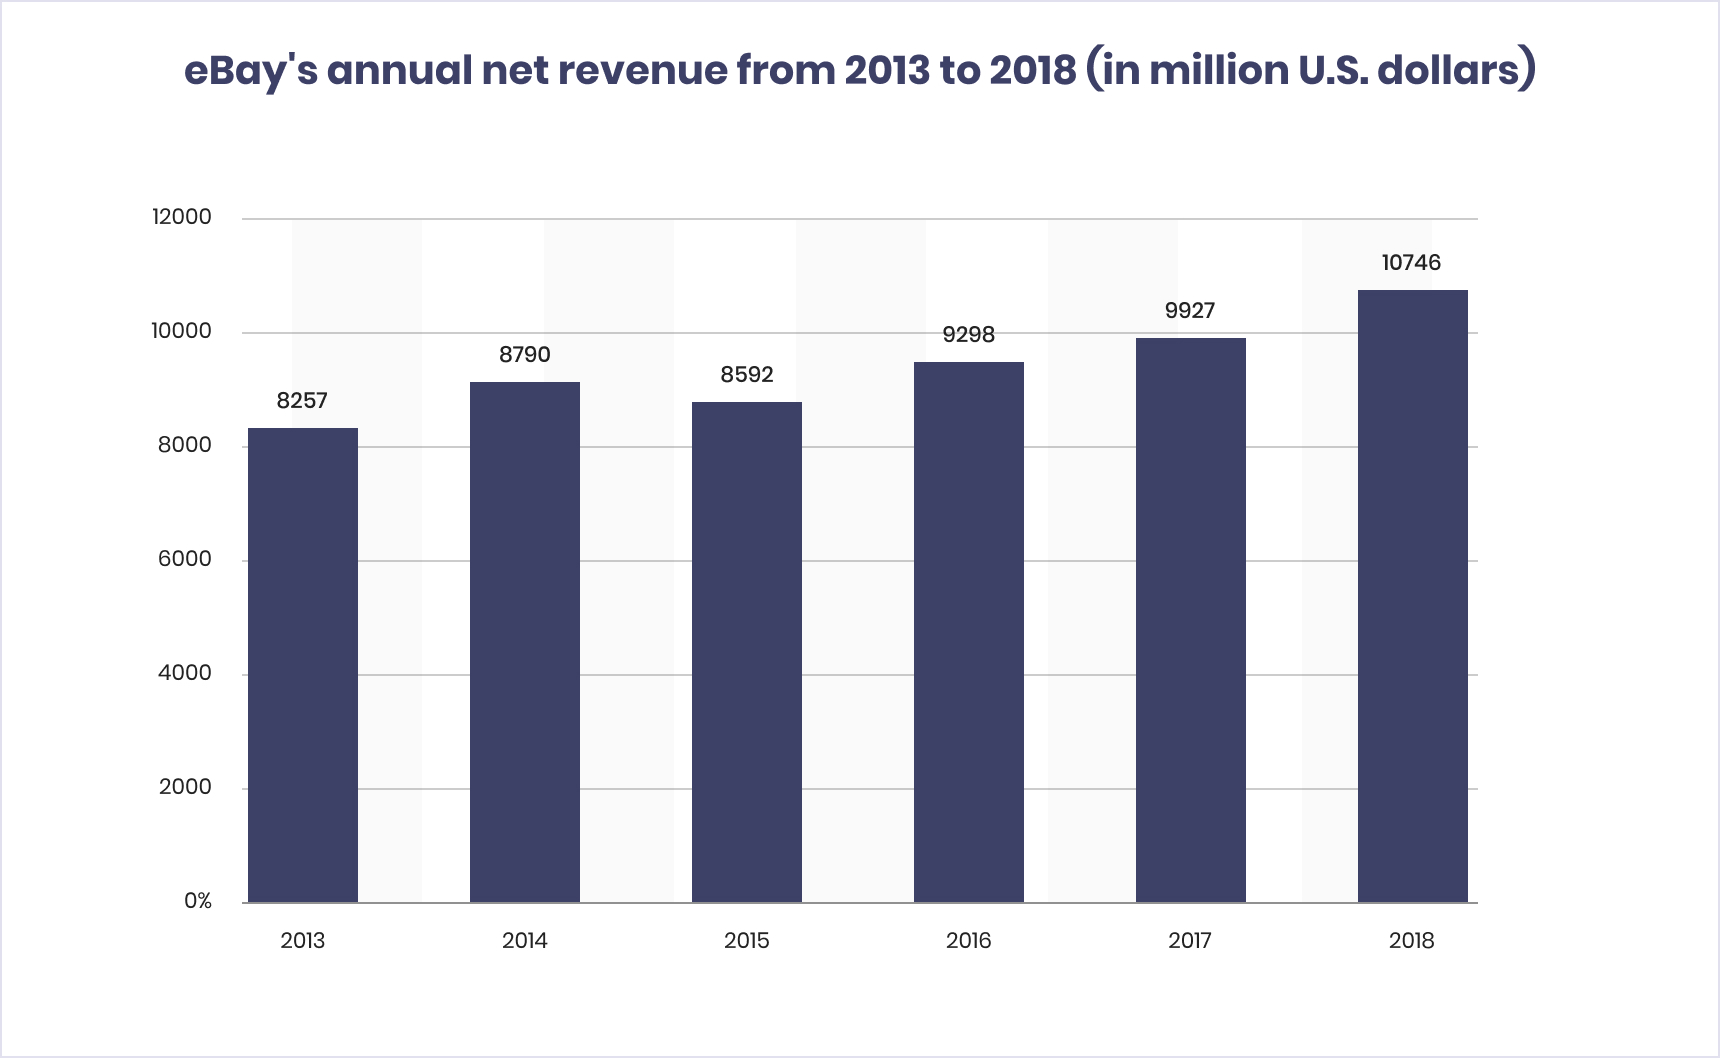 eBay's annual net revenue